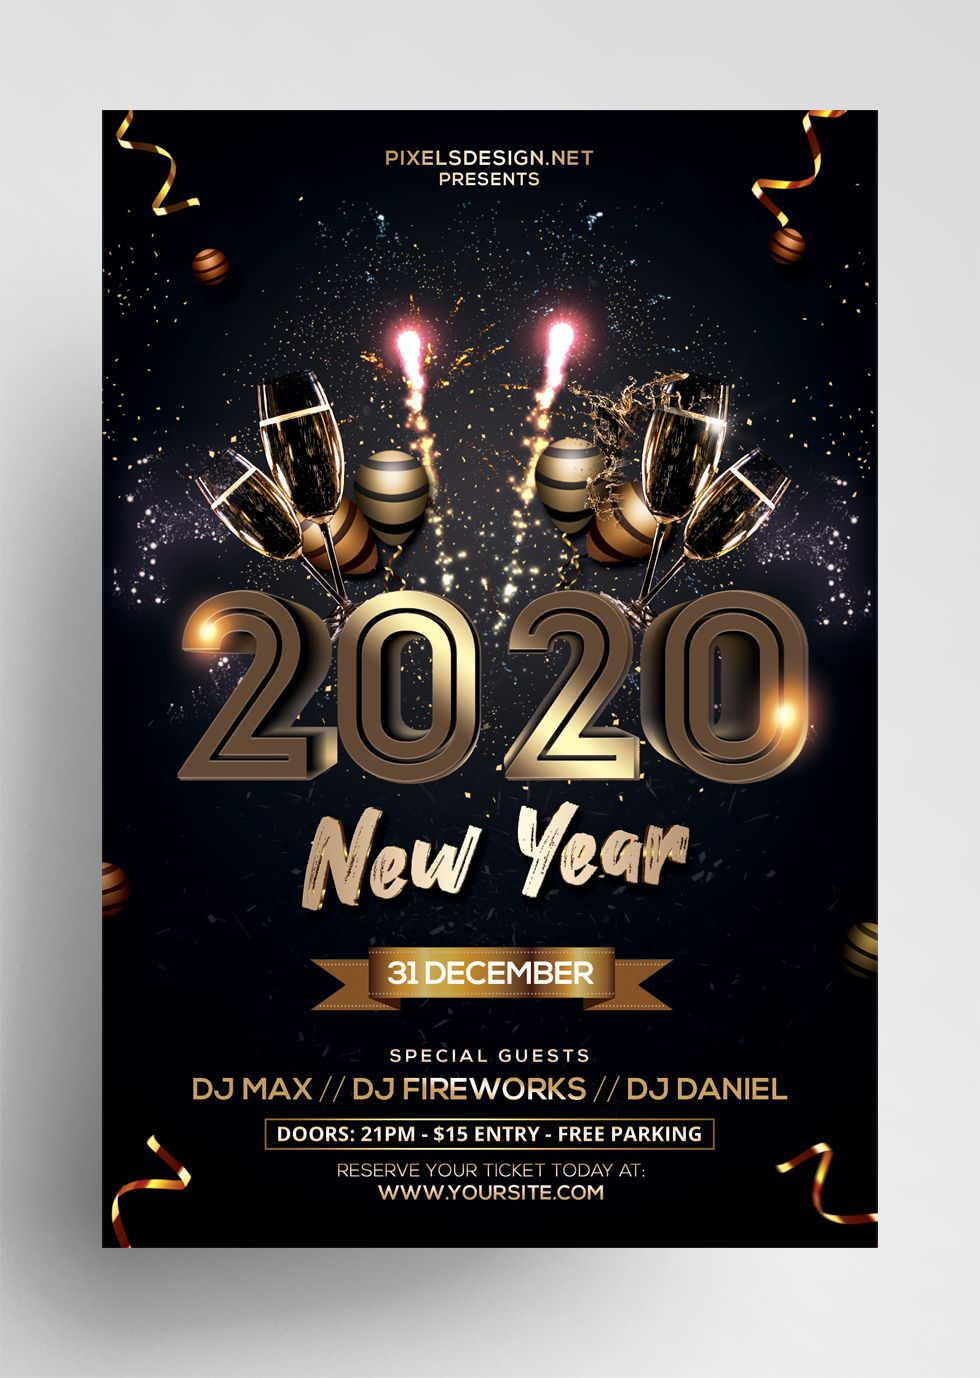 003 Imposing Free Psd Flyer Template High Definition  Templates Deviantart Club Download 2018Full